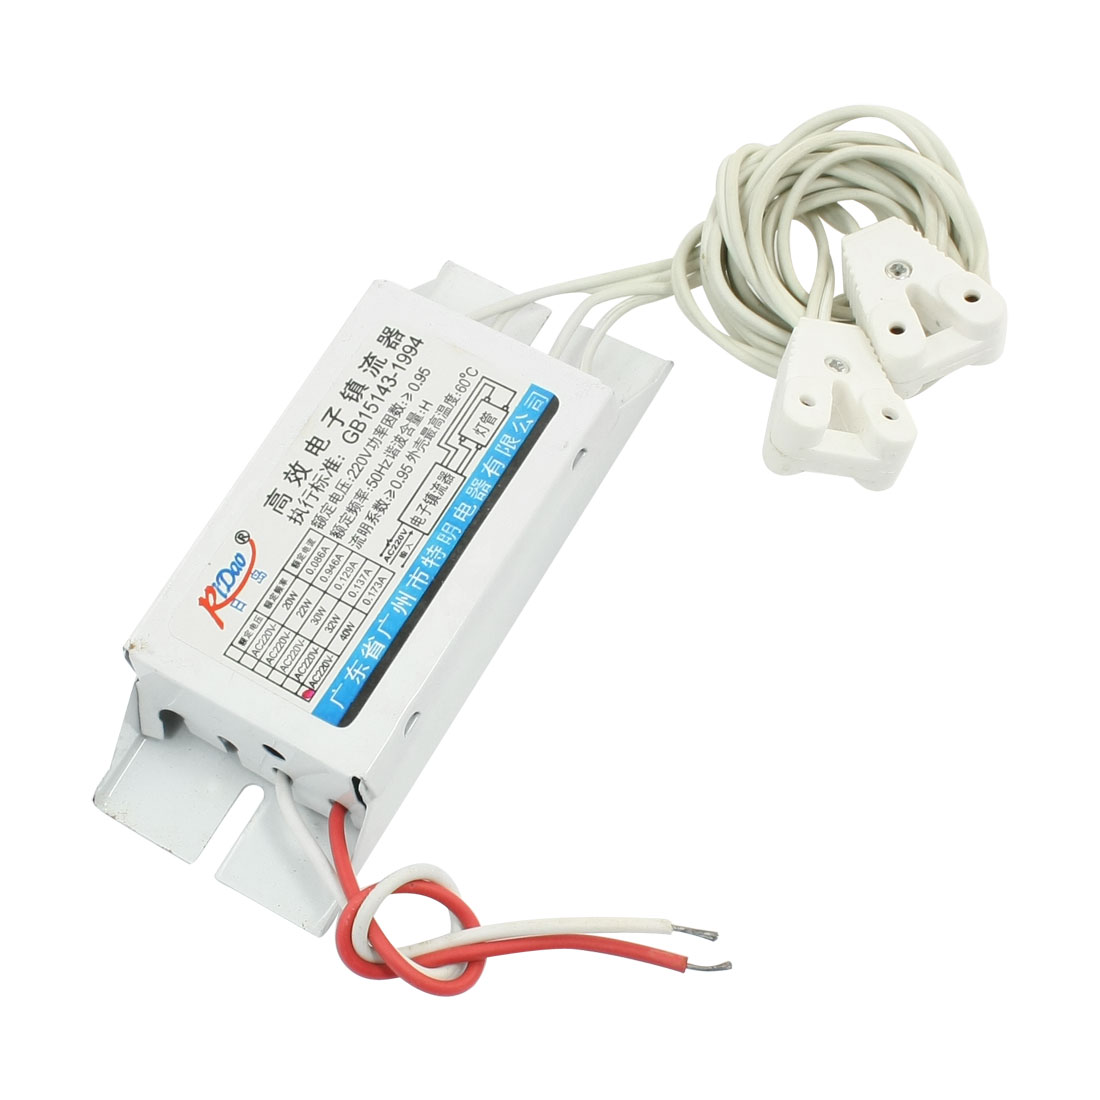 AC 220V 50Hz 40W Power Lighting Fluorescent Bulb Lamp Ballast White